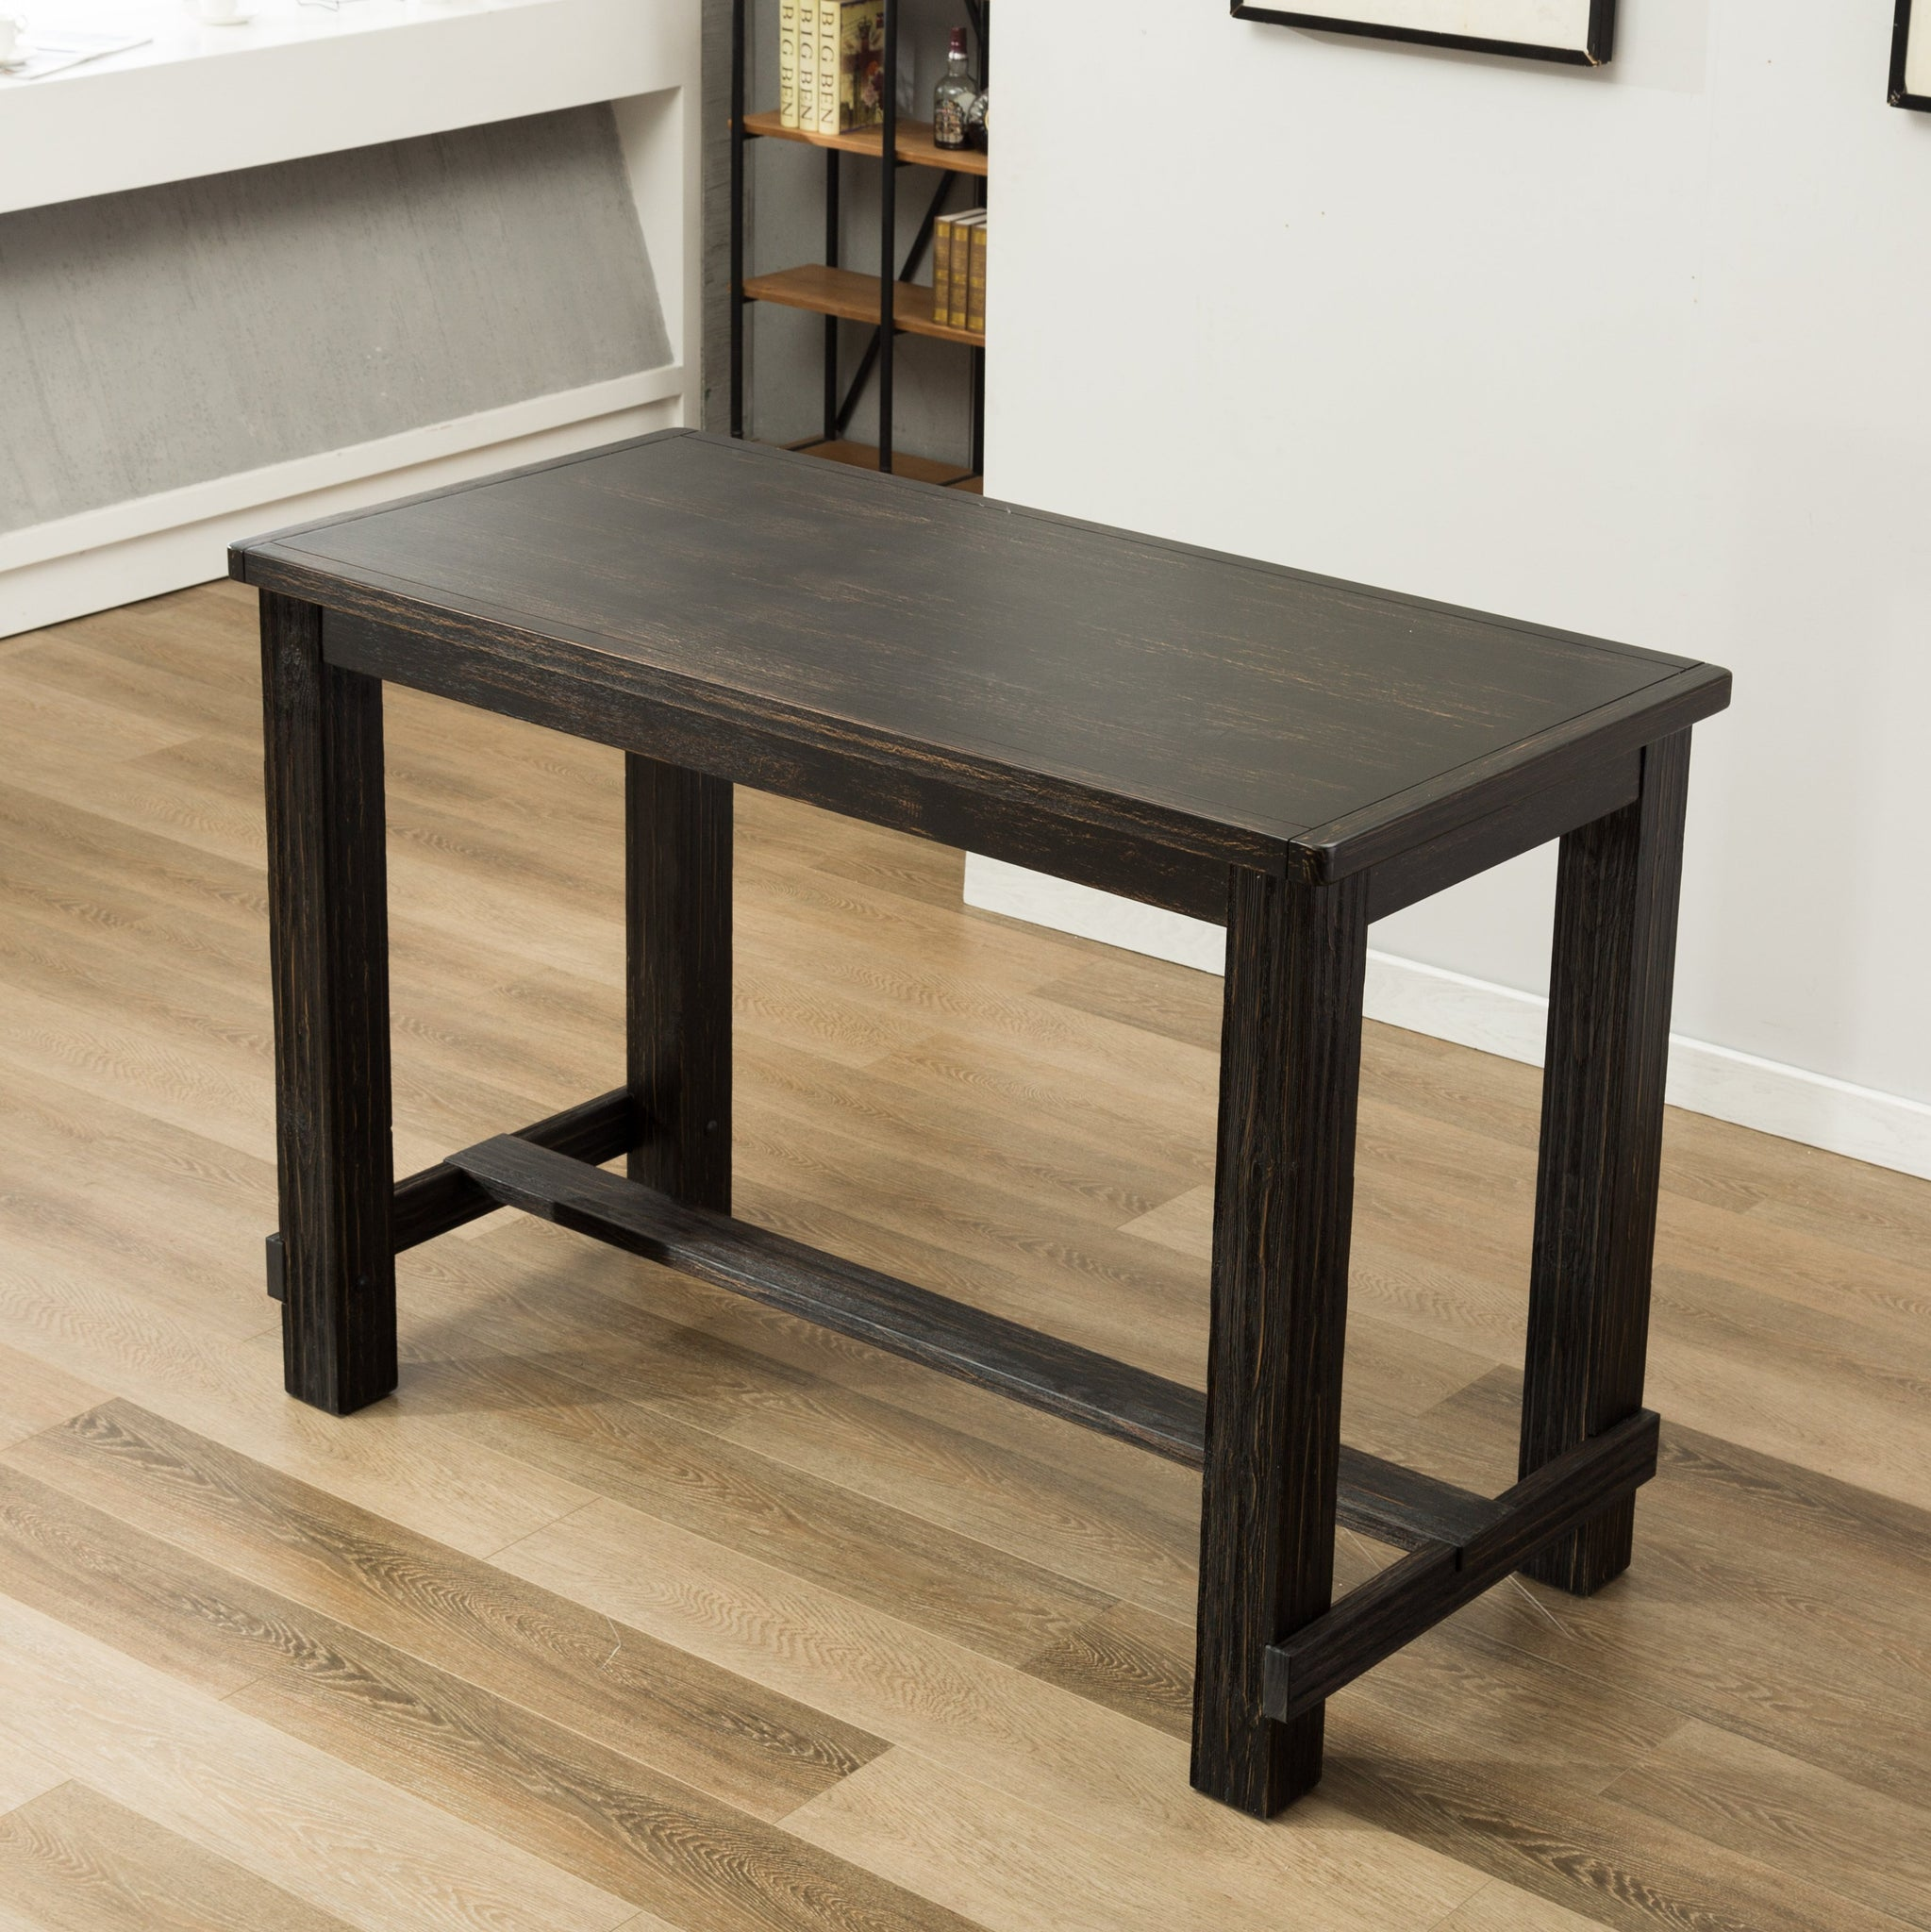 Lotusville Antique Black Finish Rectangular Wood Bar Height Dining Table